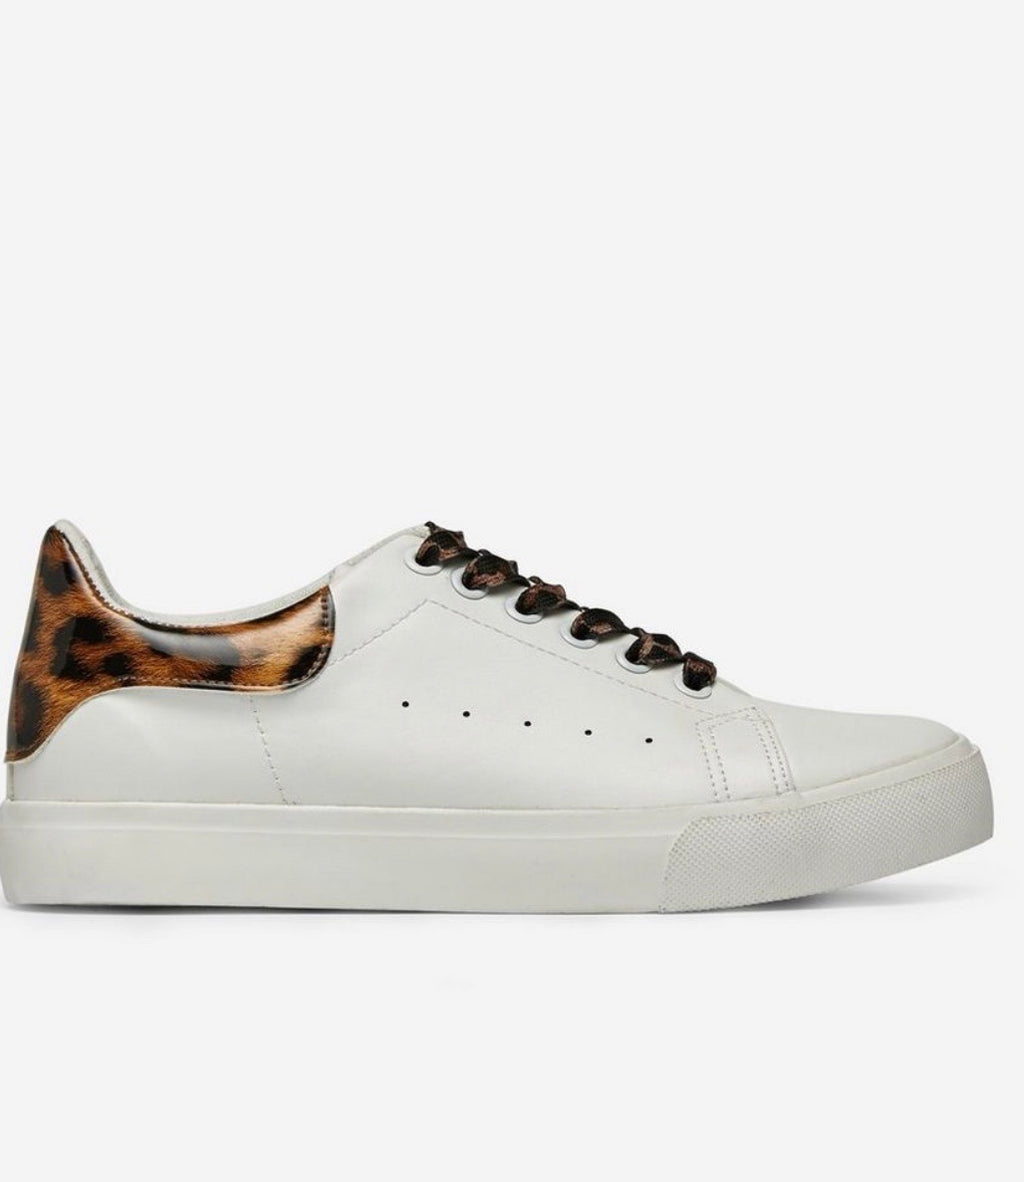 DOROTHY PERKINS ANIMAL TRIM TRAINERS